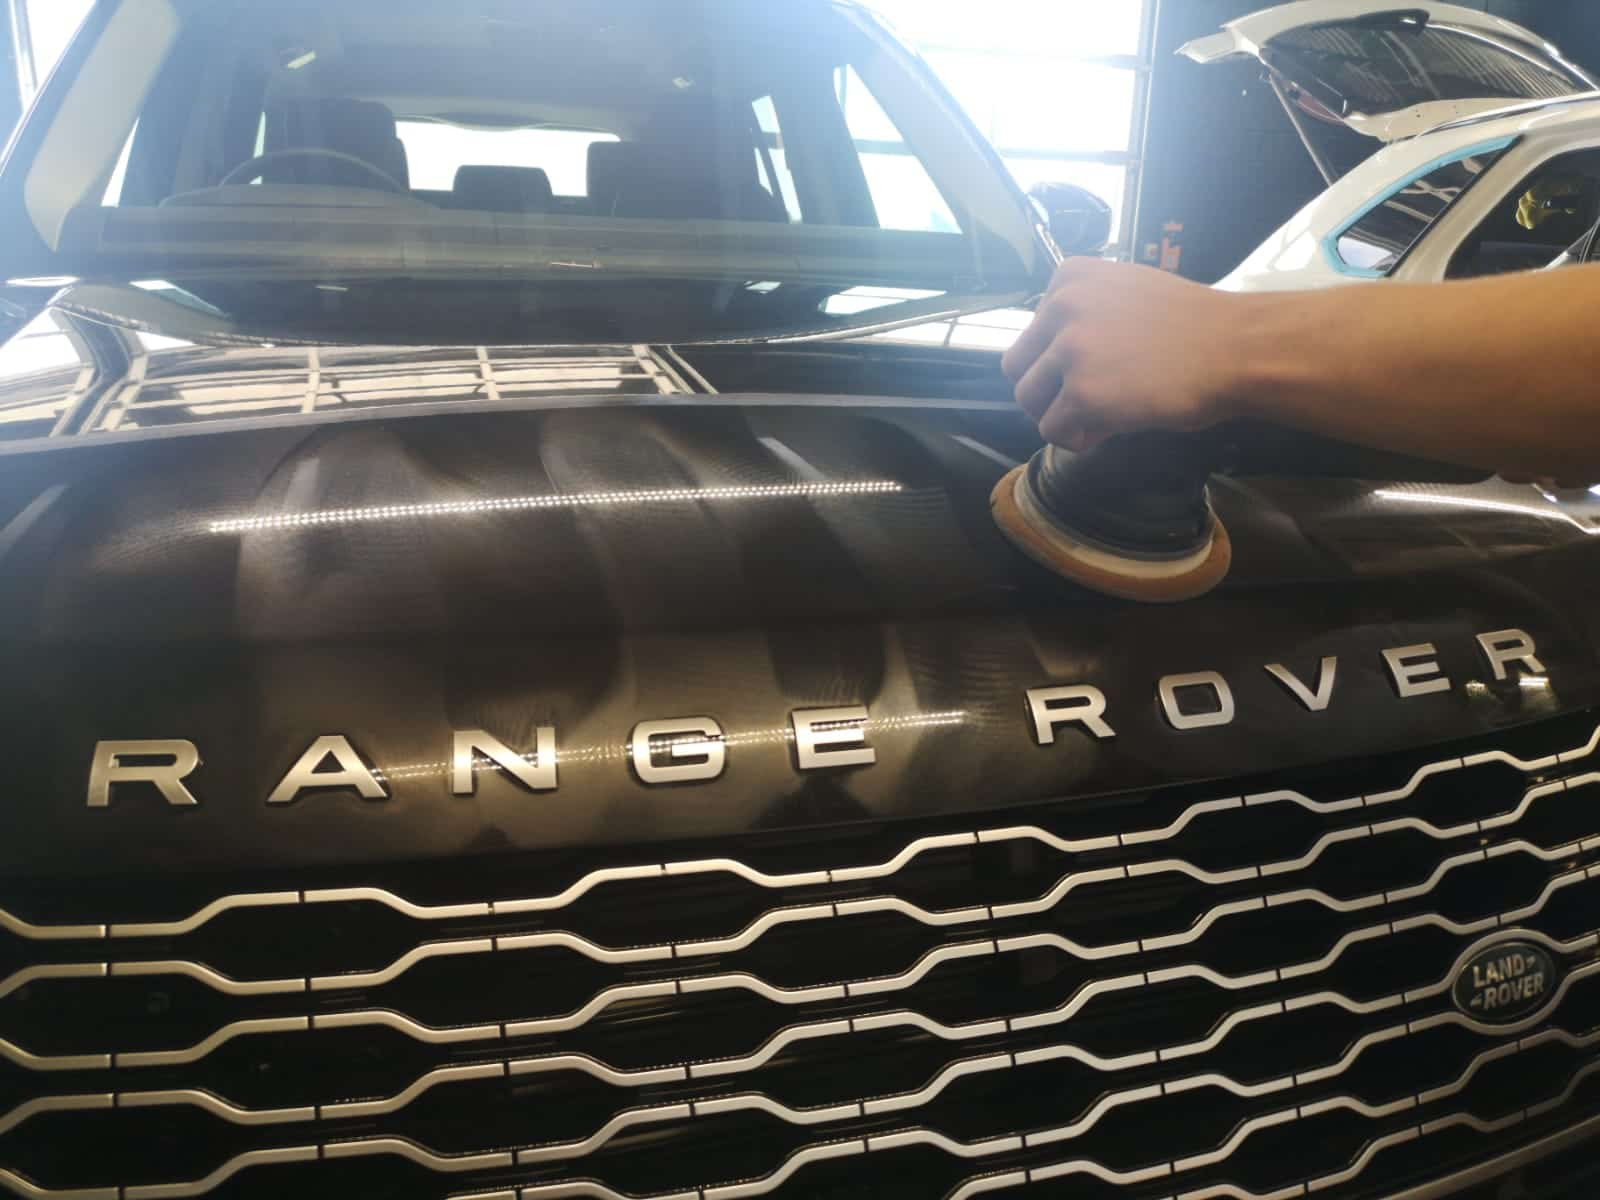 Range Rover Machine Polish